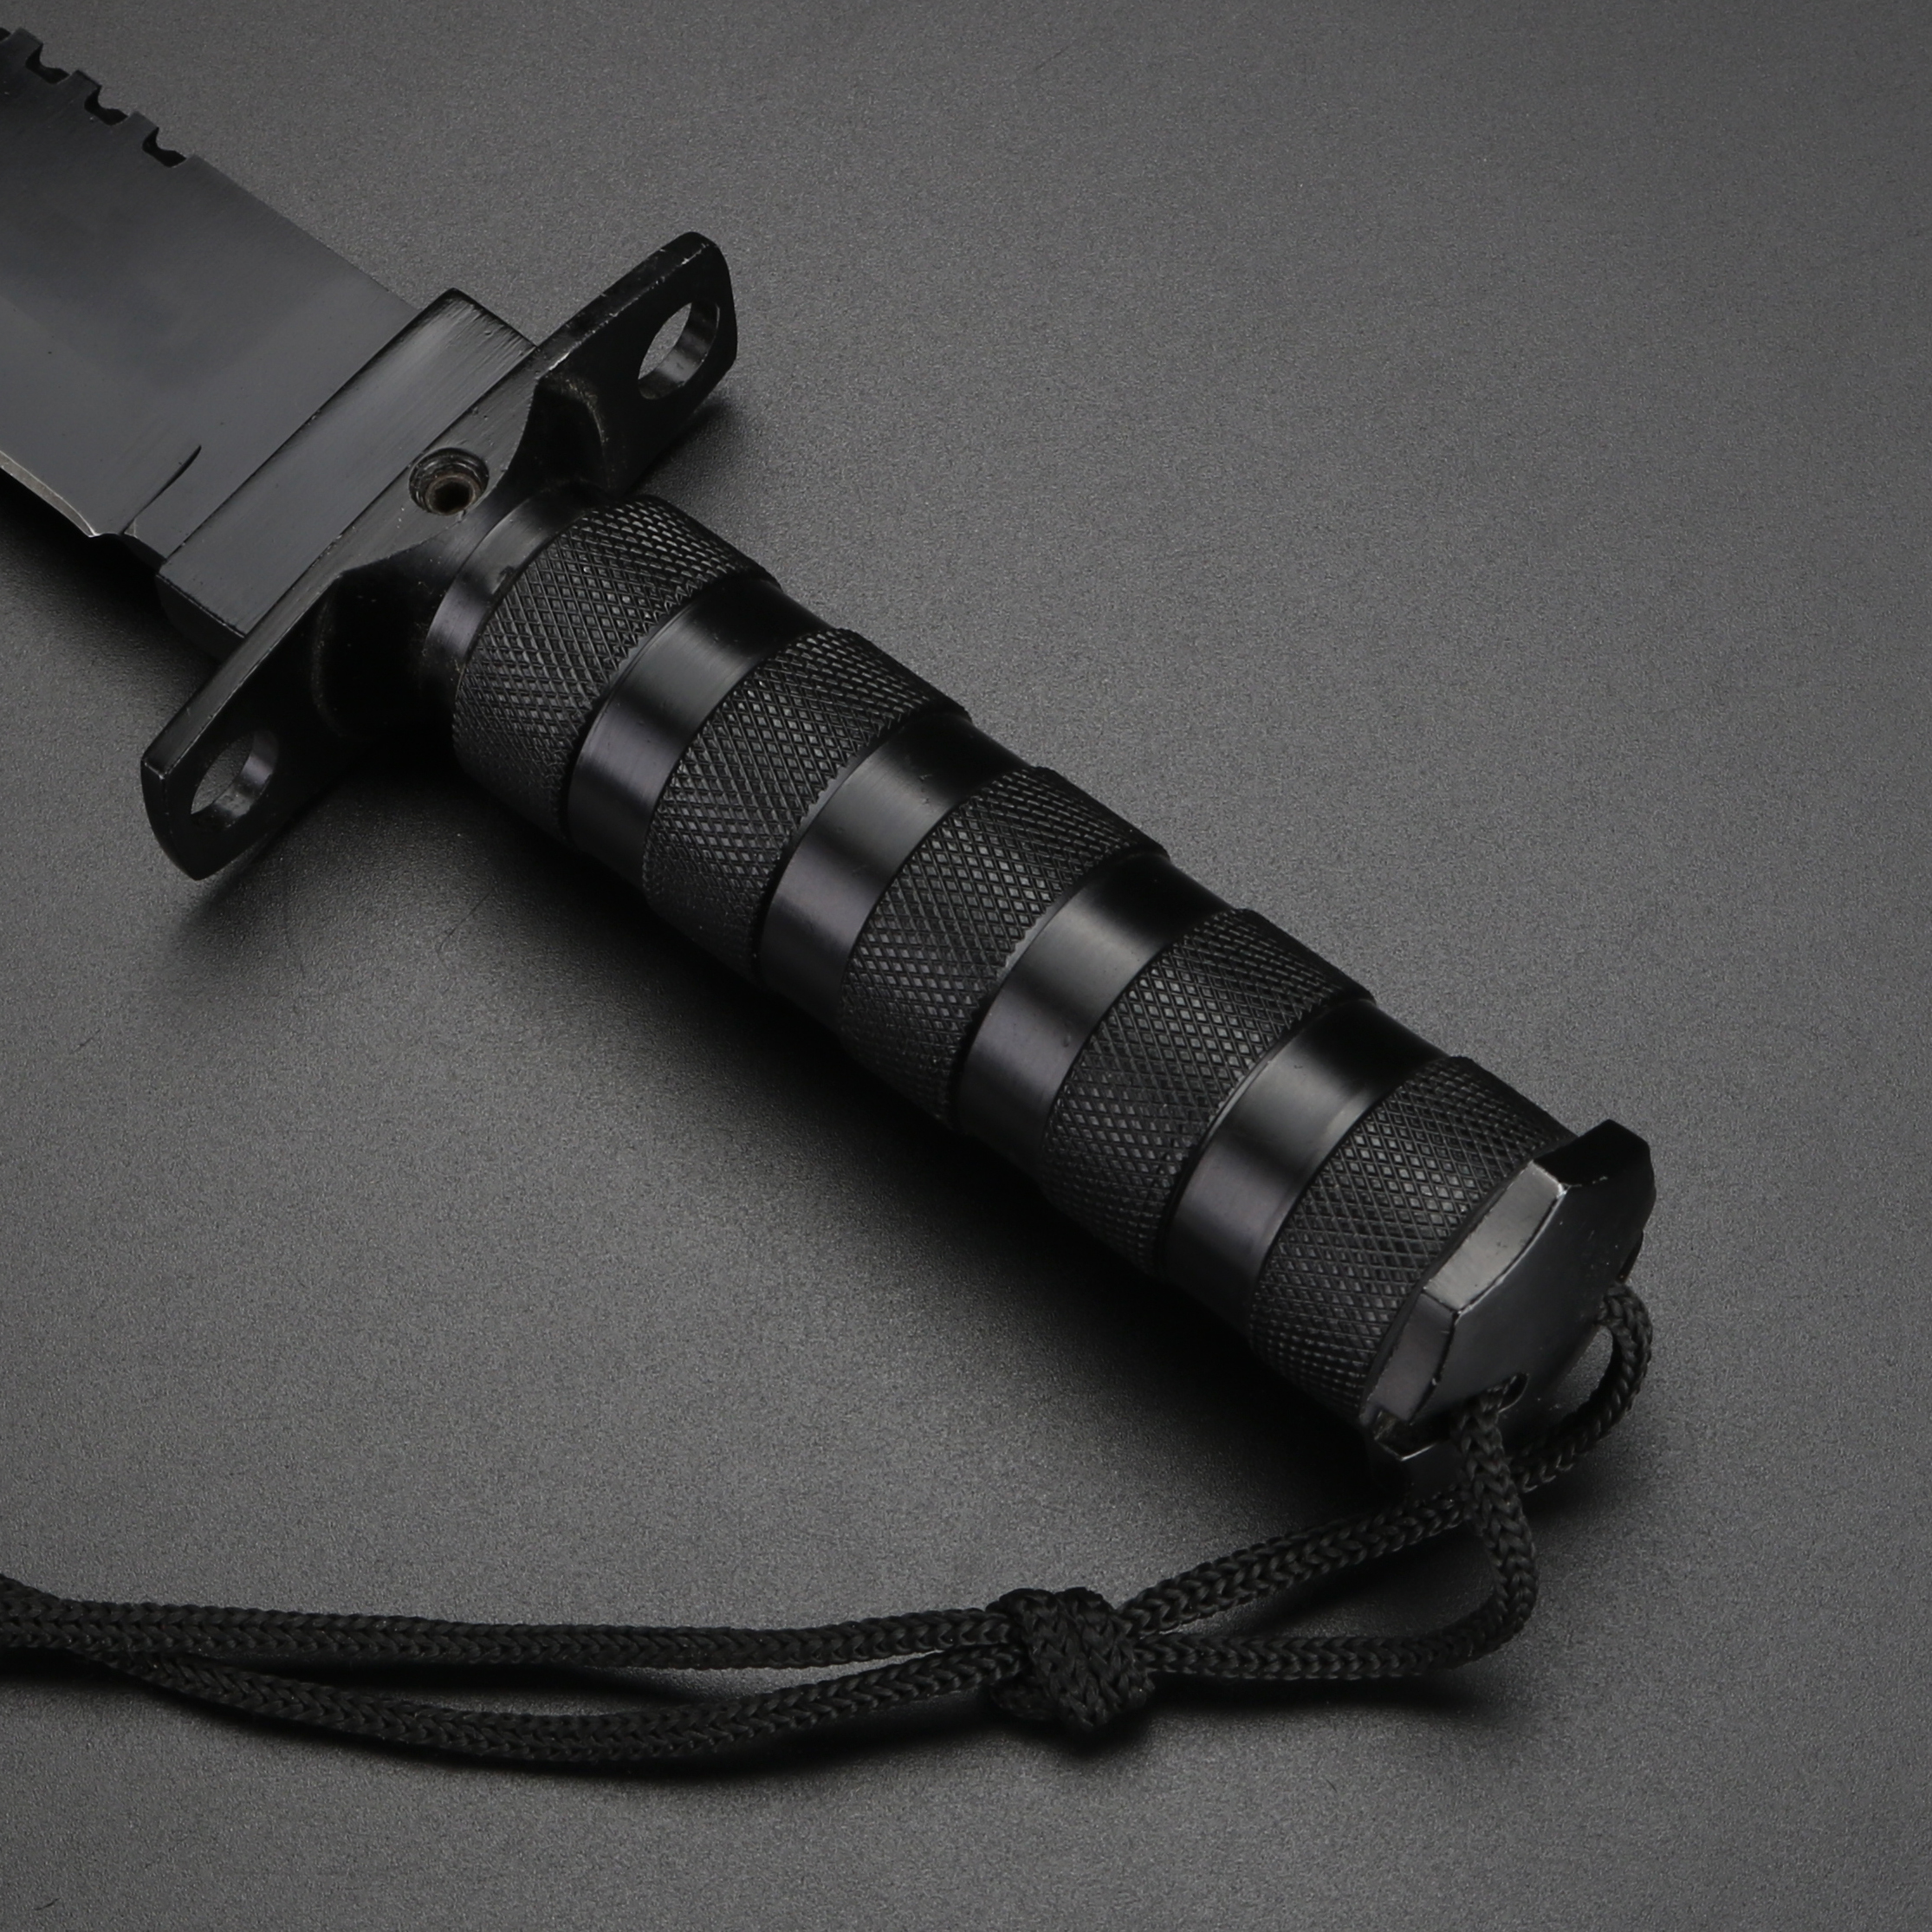 Tools : Wilderness Hunting Knife Black Outdoor Survival Knives Camping Fixed Knife Stainless Steel Multi Hand Knives for Hiking Jungle